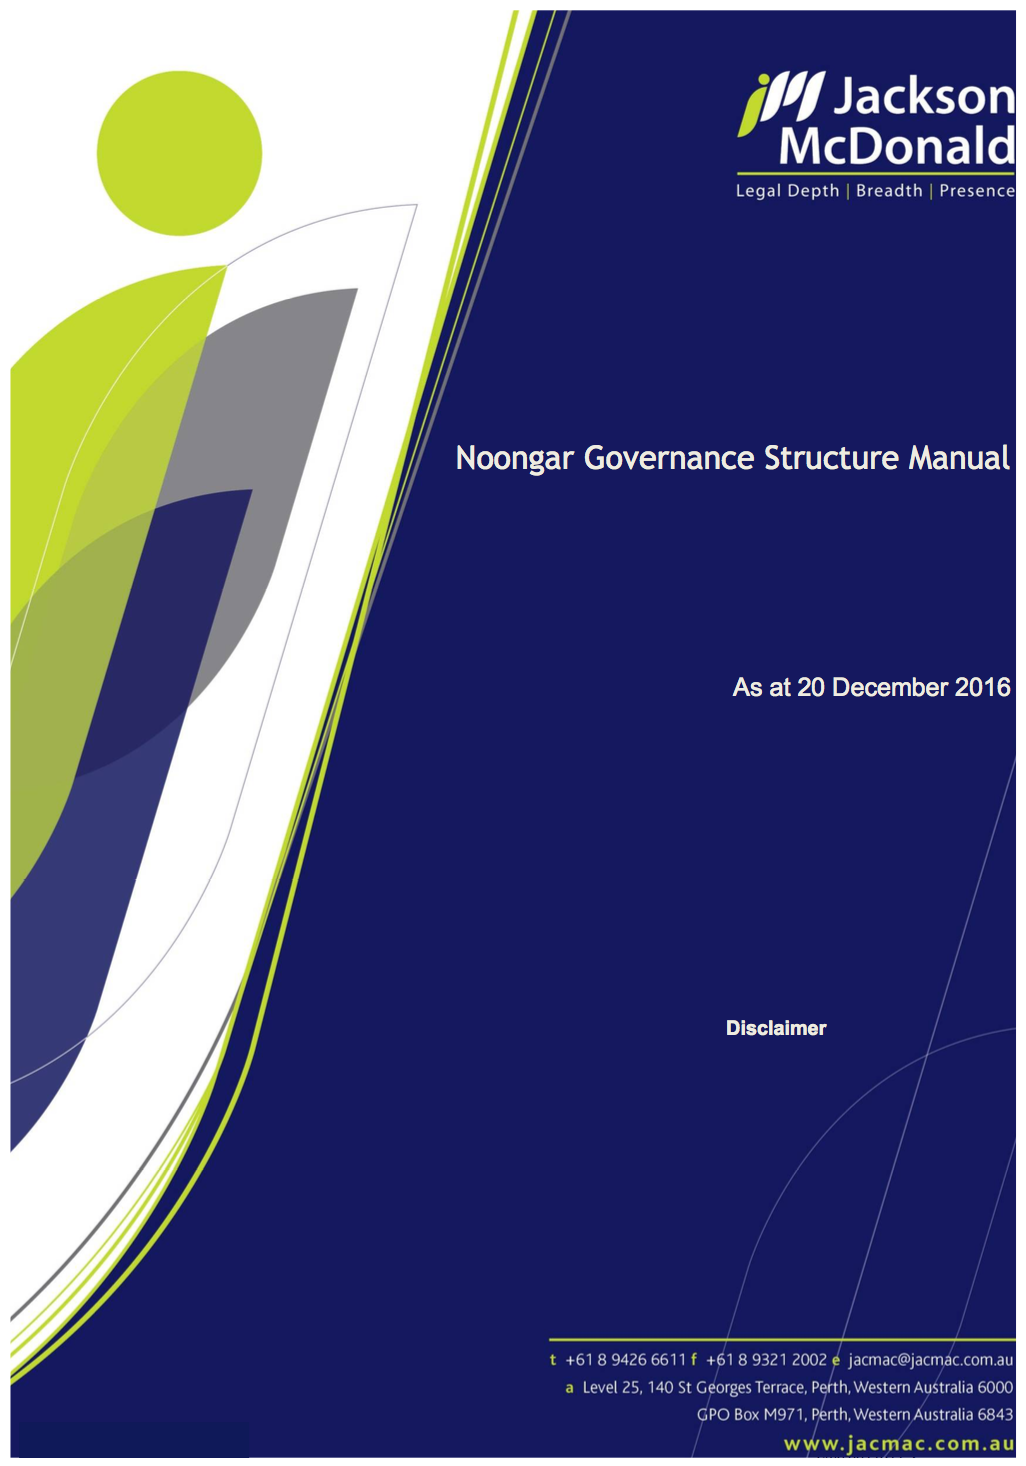 Noongar Governance Structure Manual